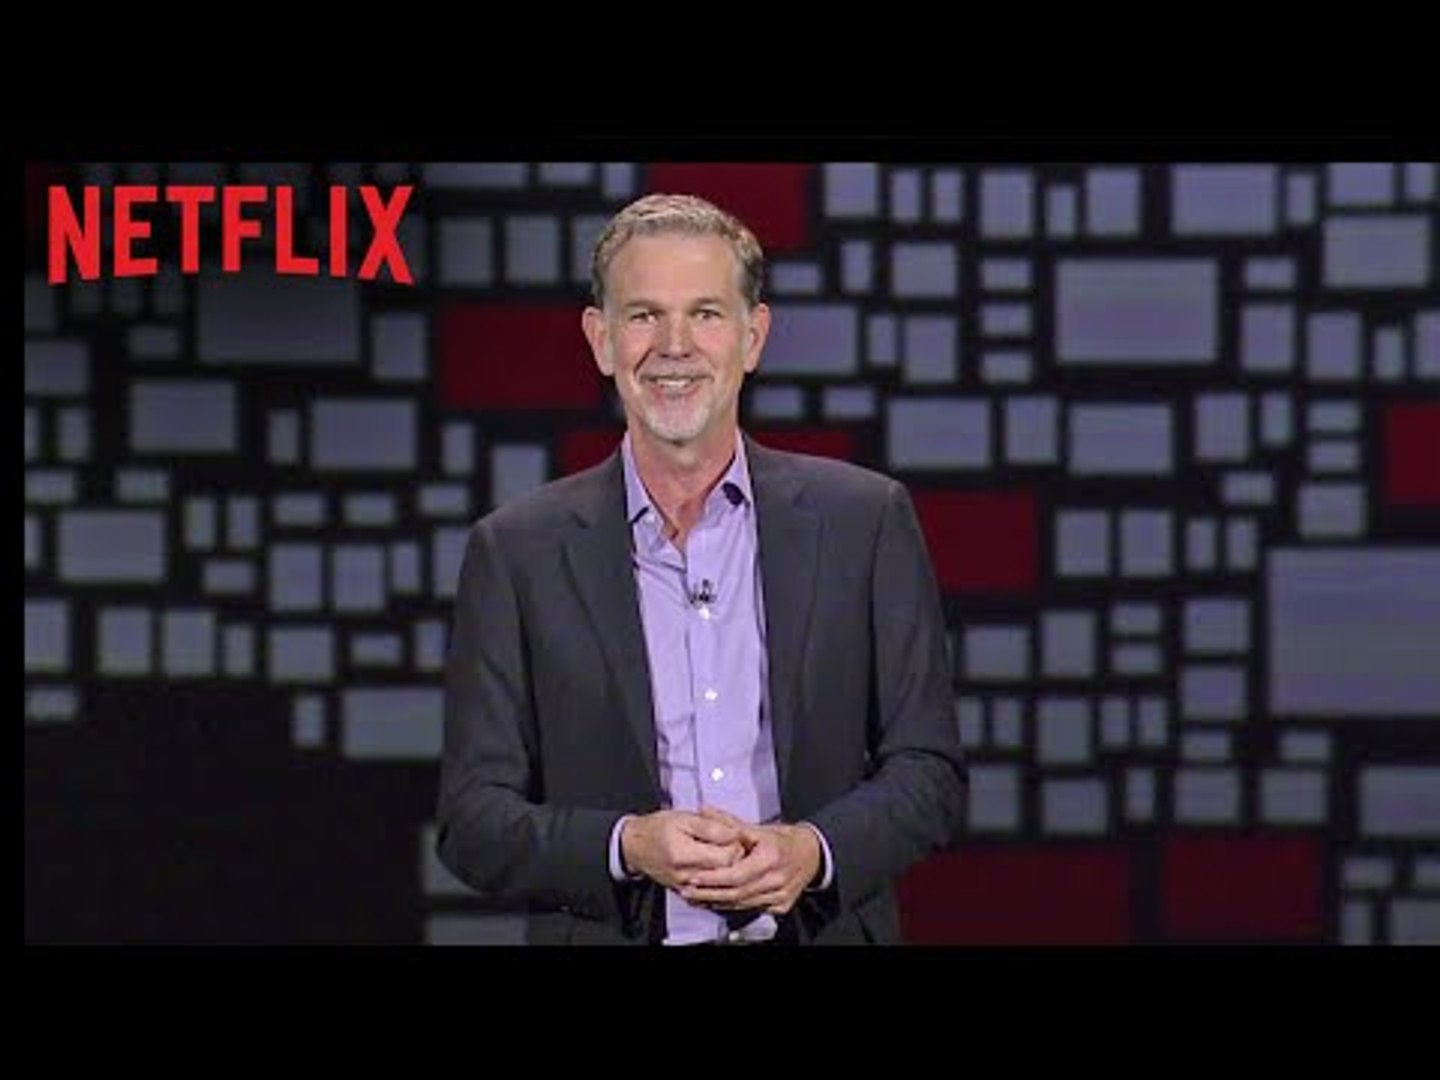 Netflix CES 2016 Keynote | Reed Hastings, Ted Sarandos - Highlights [HD] | Netflix